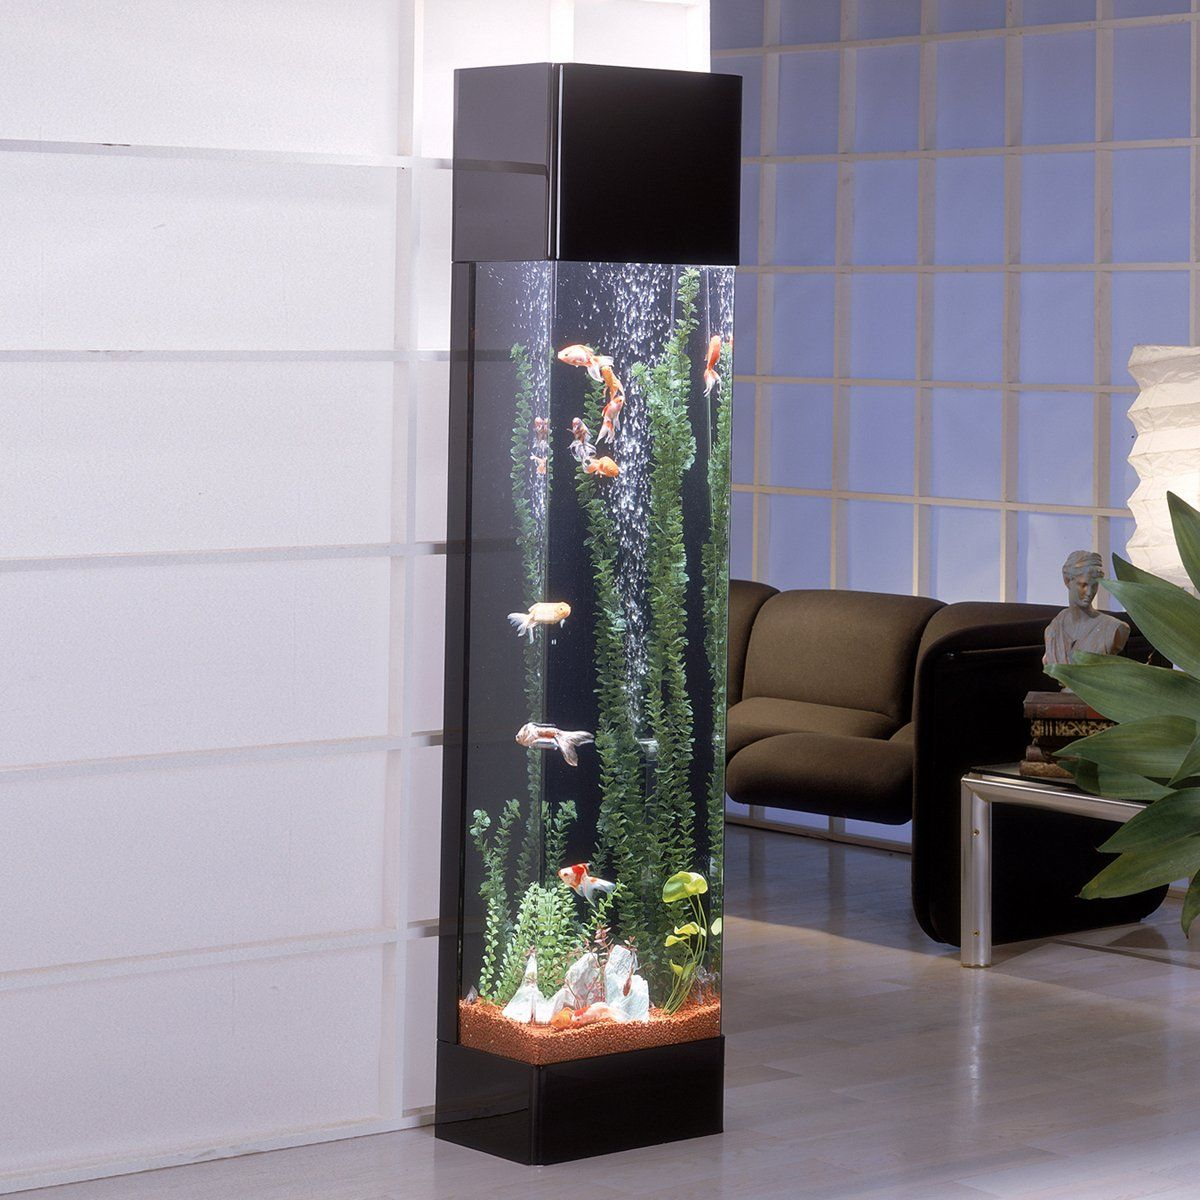 Midwest tropical rt 3000 rectangle aqua tower vertical for Floor fish tank